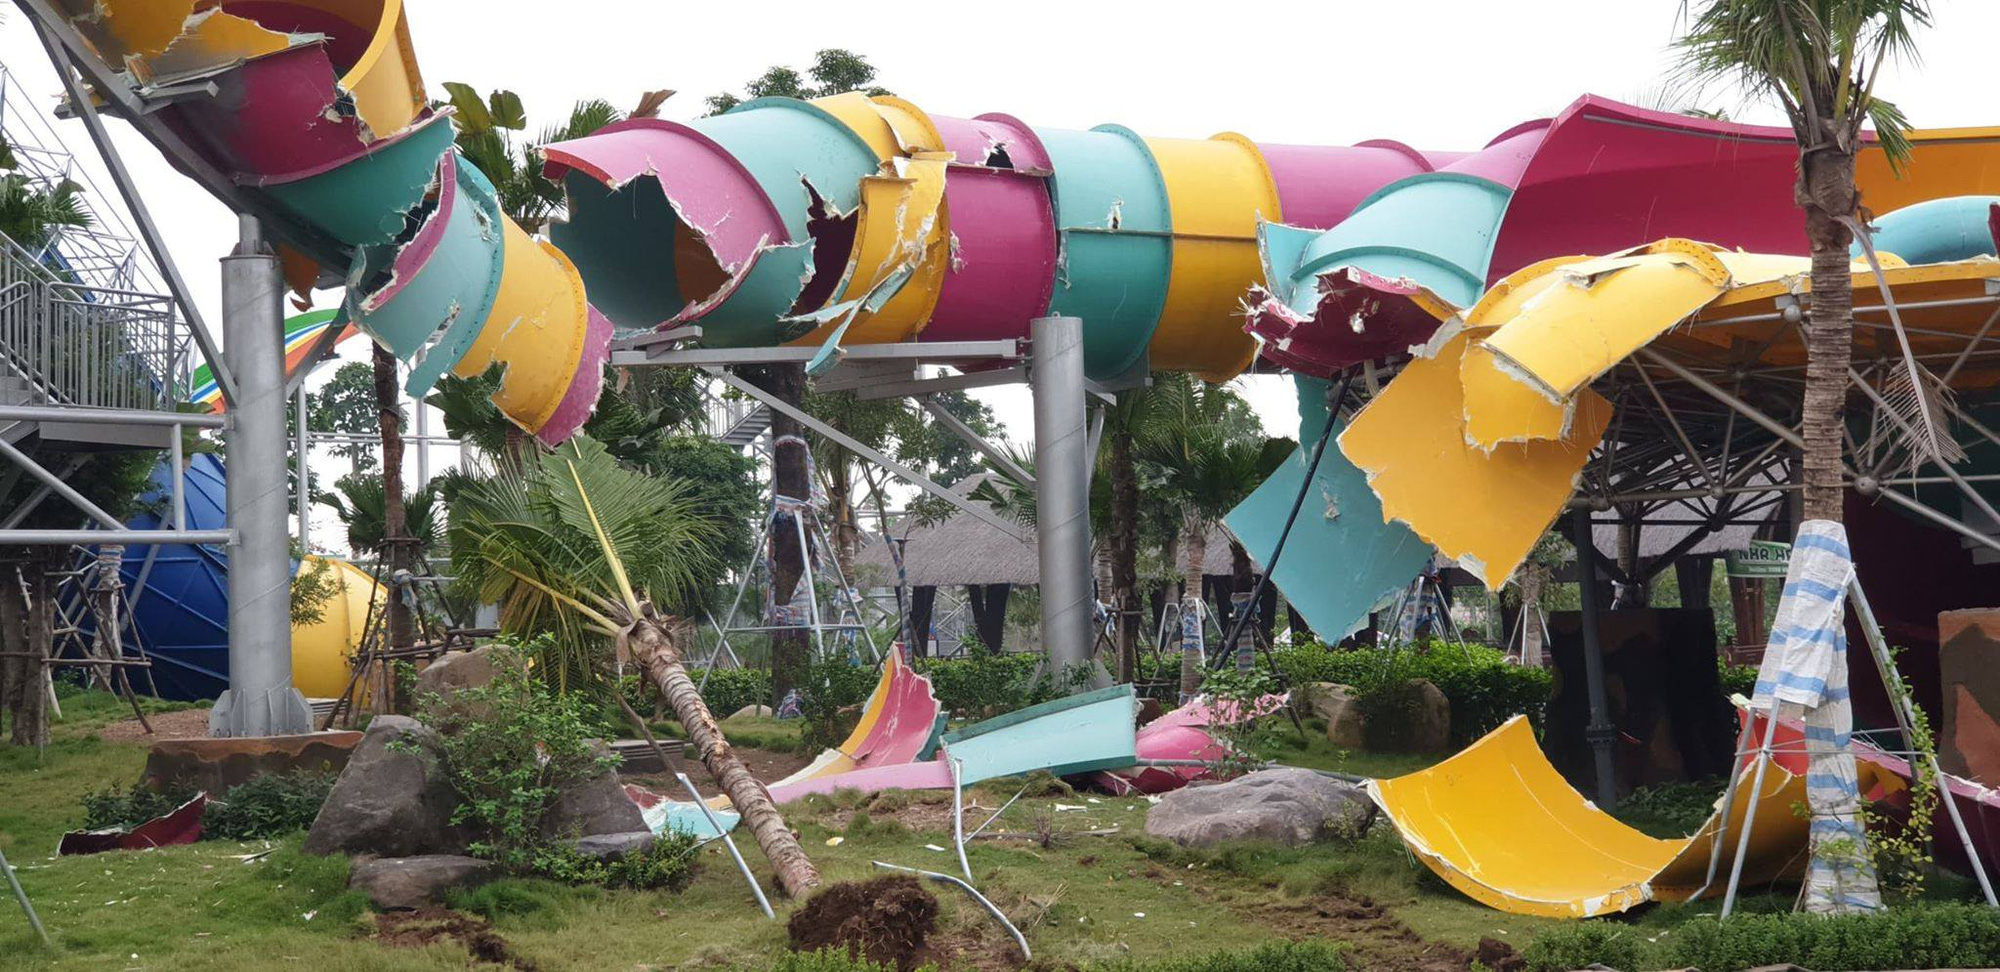 A water slide at Thanh Ha Water Park in Ha Dong District, Hanoi is torn down on January 15, 2020. Photo: B.N / Tuoi Tre